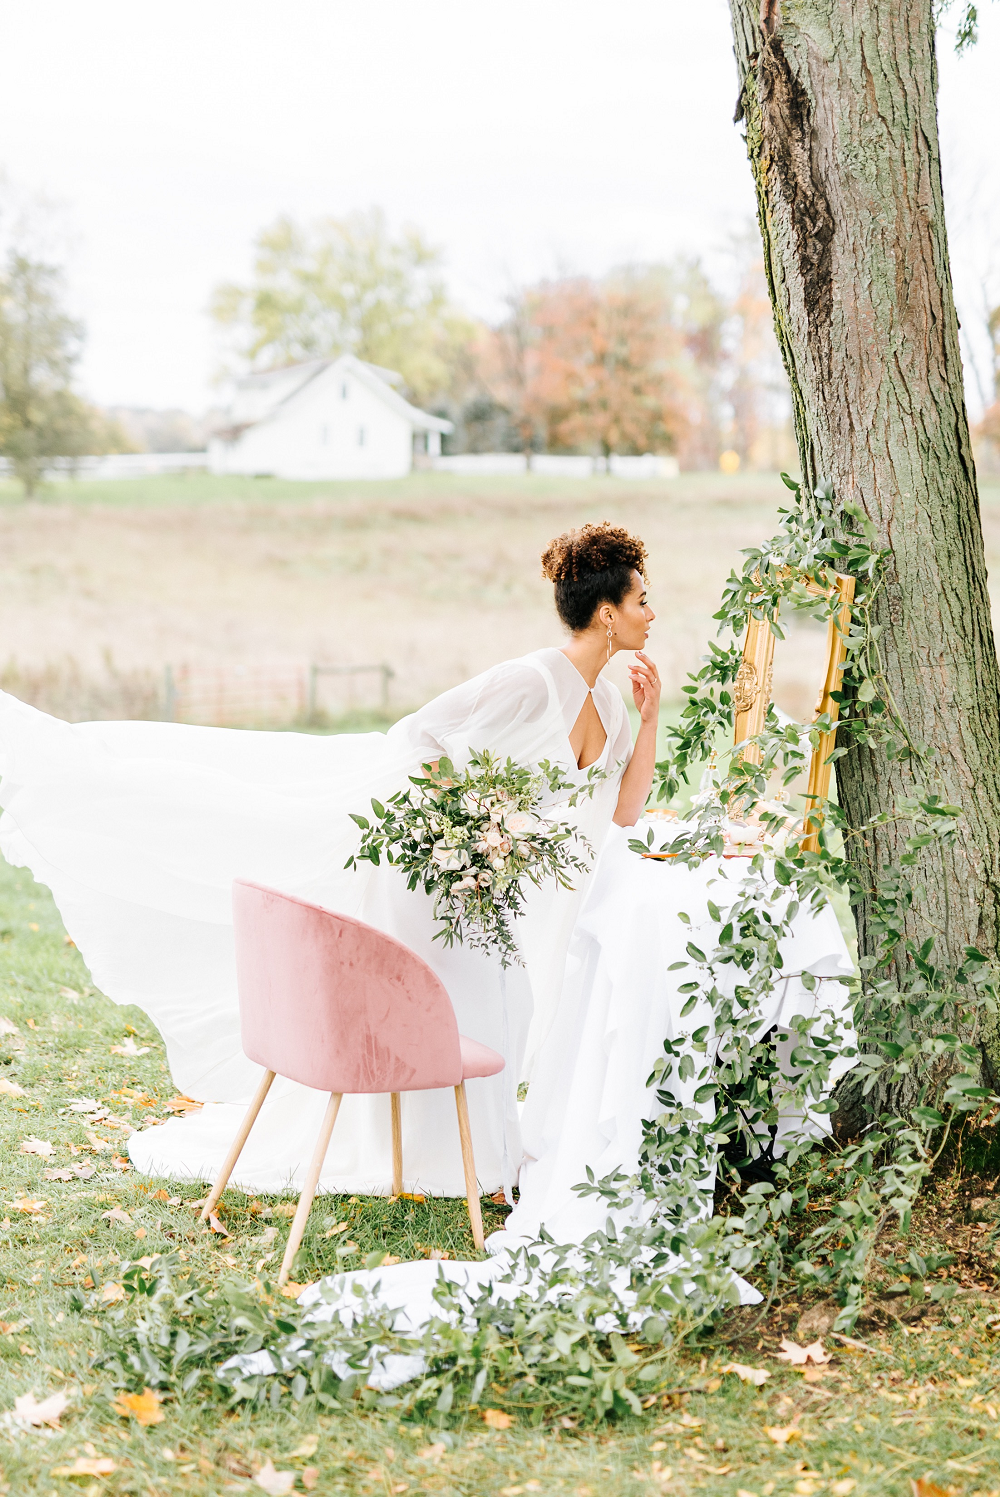 Lush Greenery Wedding Inspired Styled Shoot at Cornman Farms Bride Gazing Into Mirror